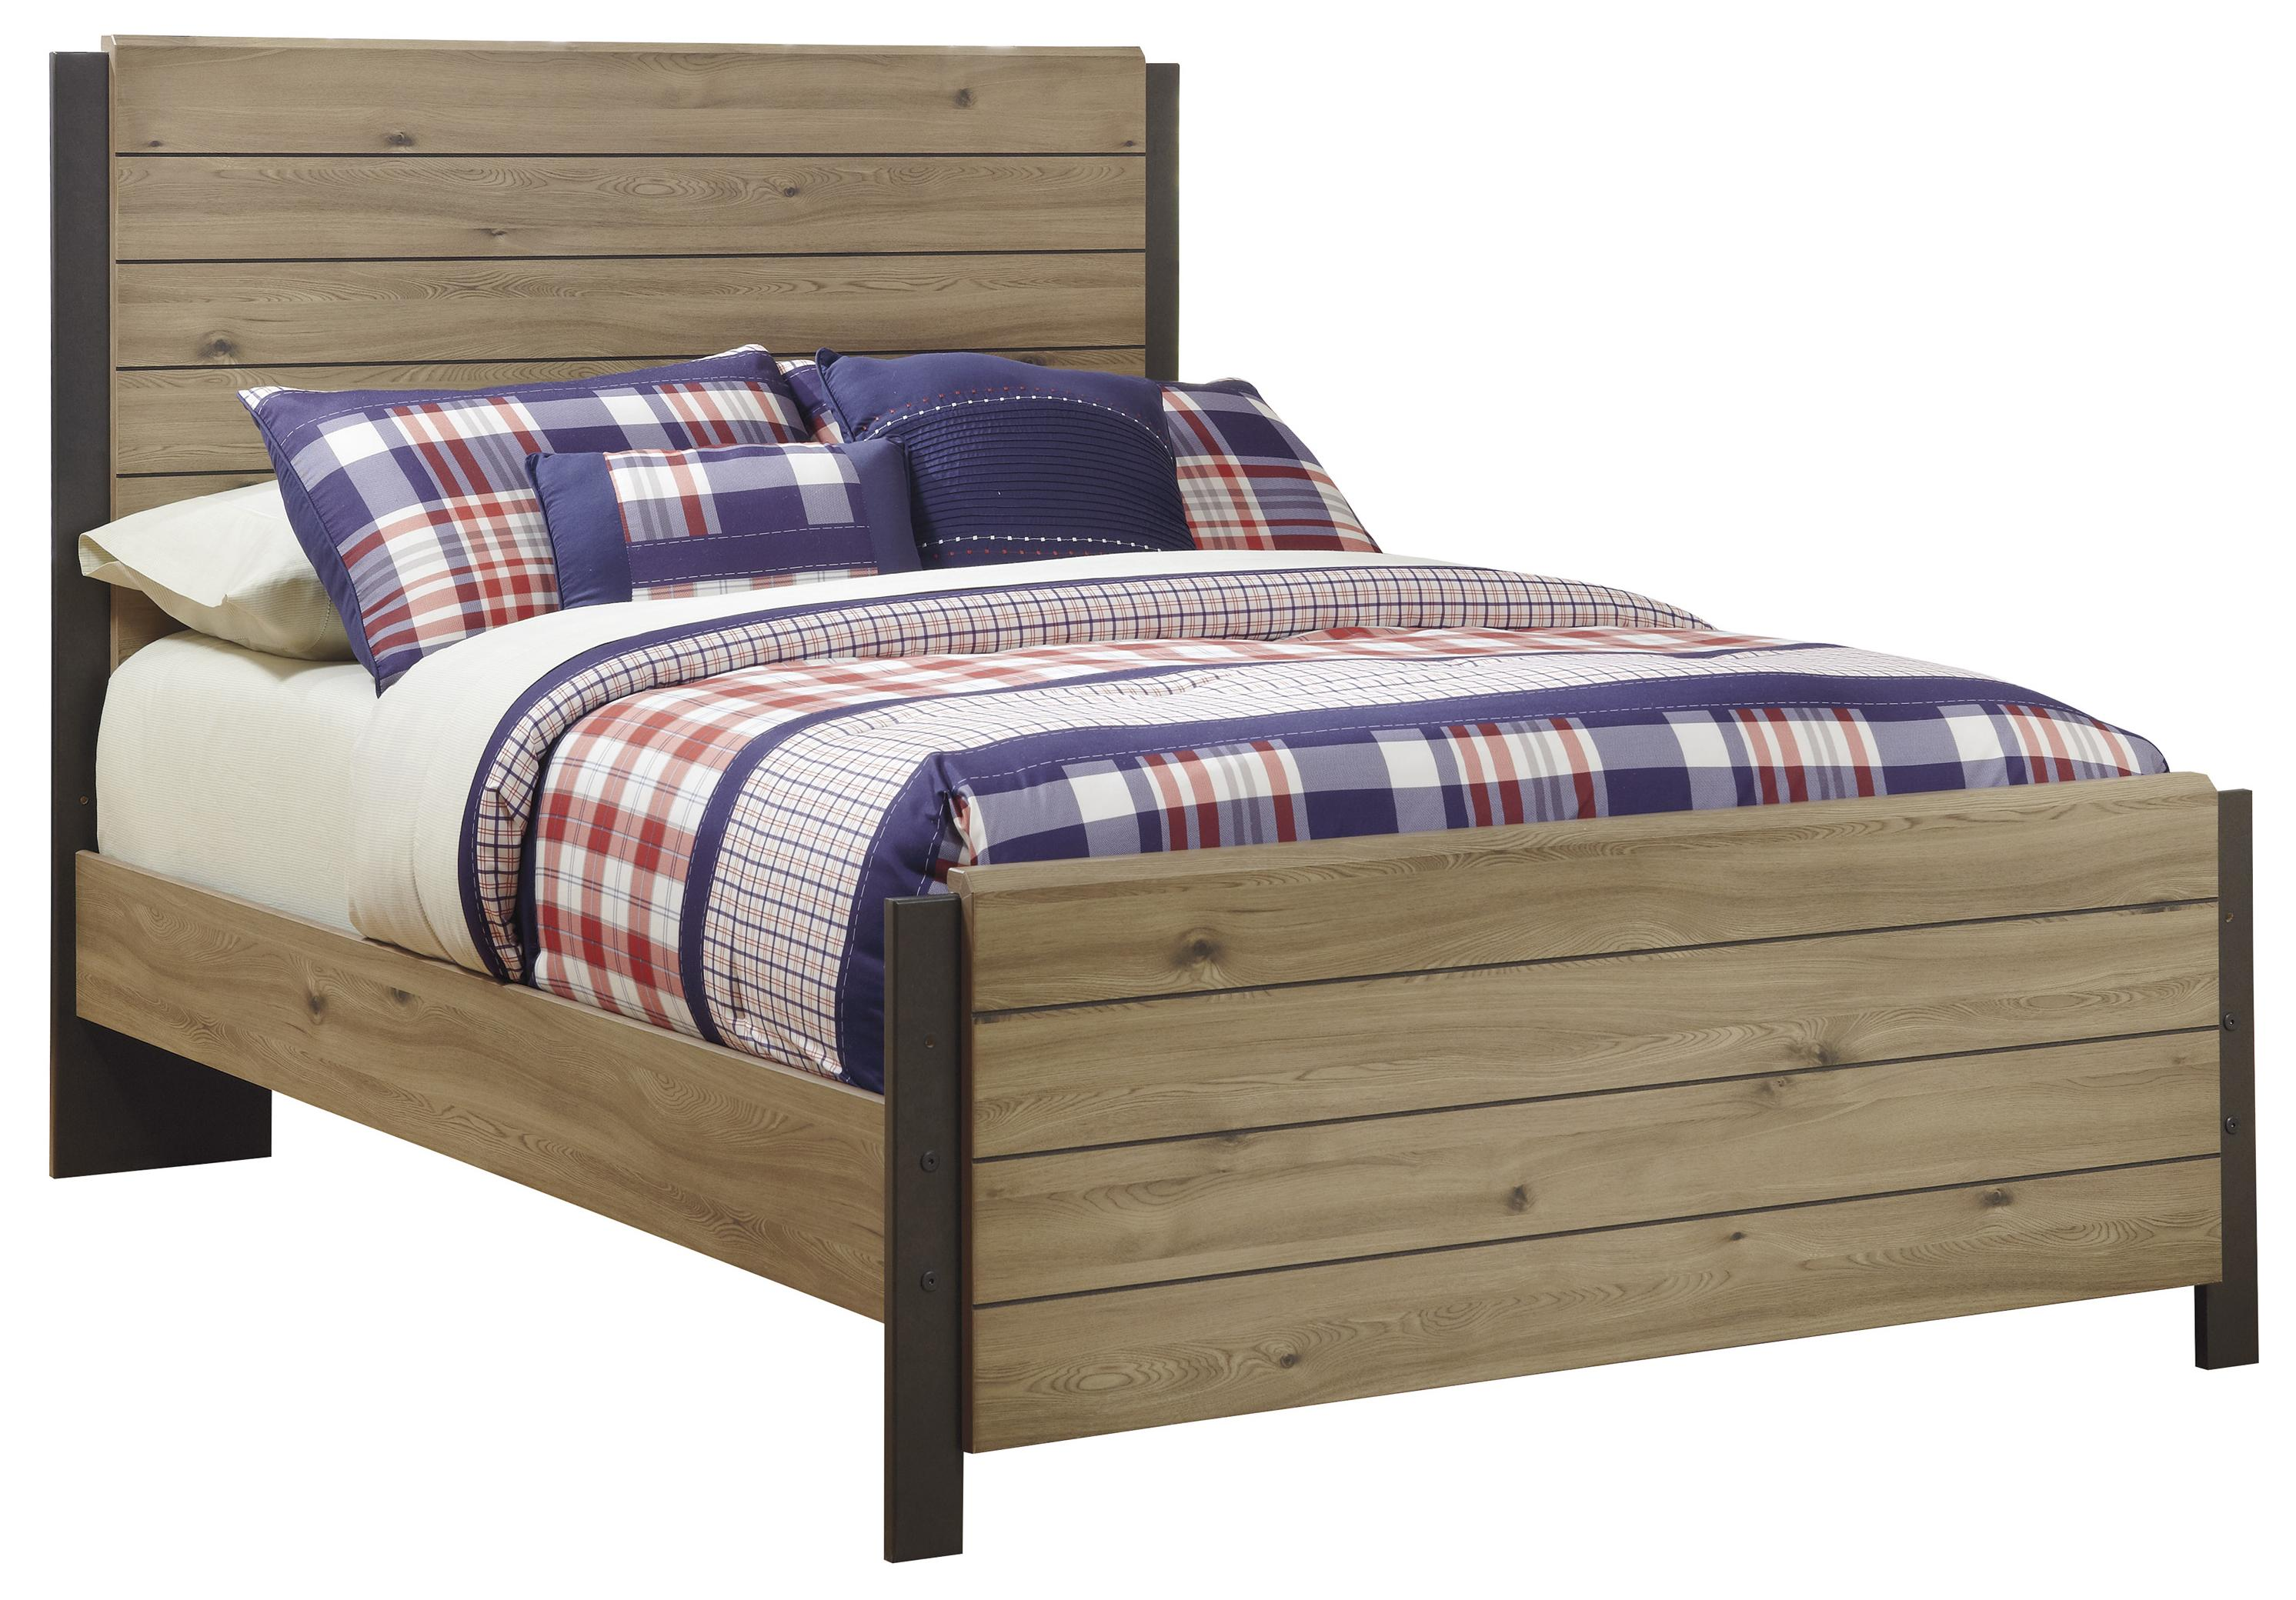 Signature Design by Ashley Dexifield Full Panel Bed - Item Number: B298-87+84+86